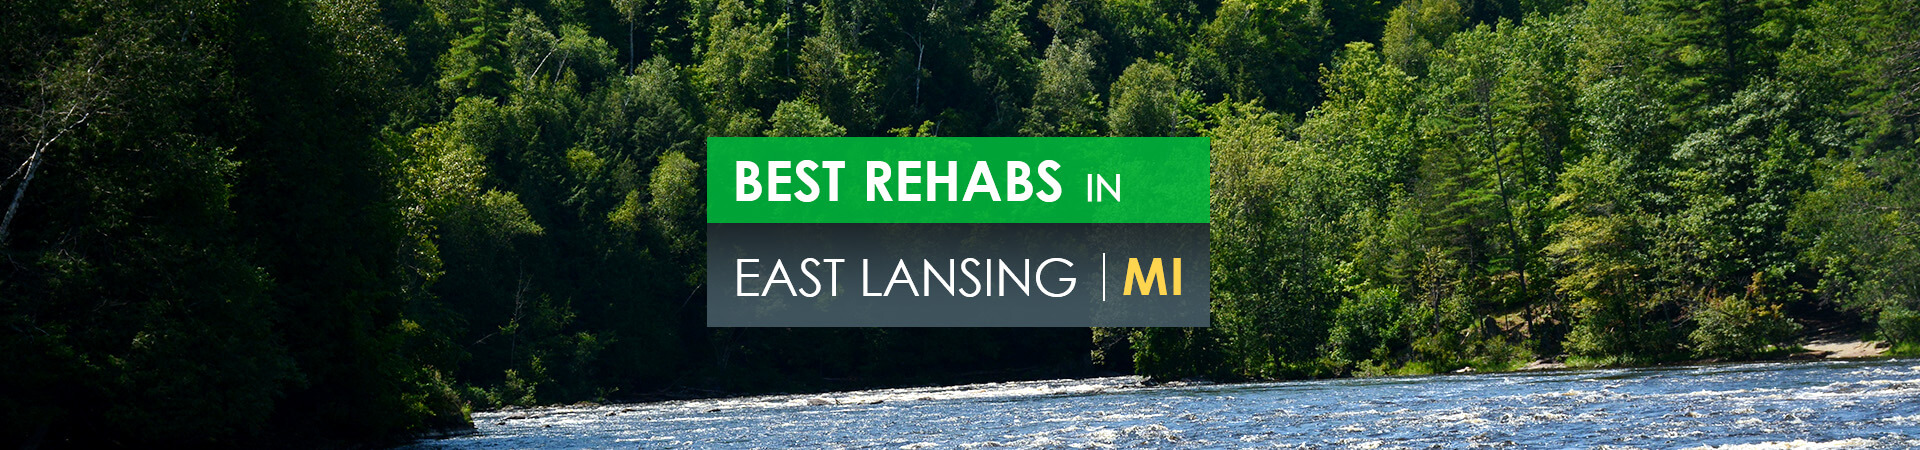 Best rehabs in East Lansing, MI